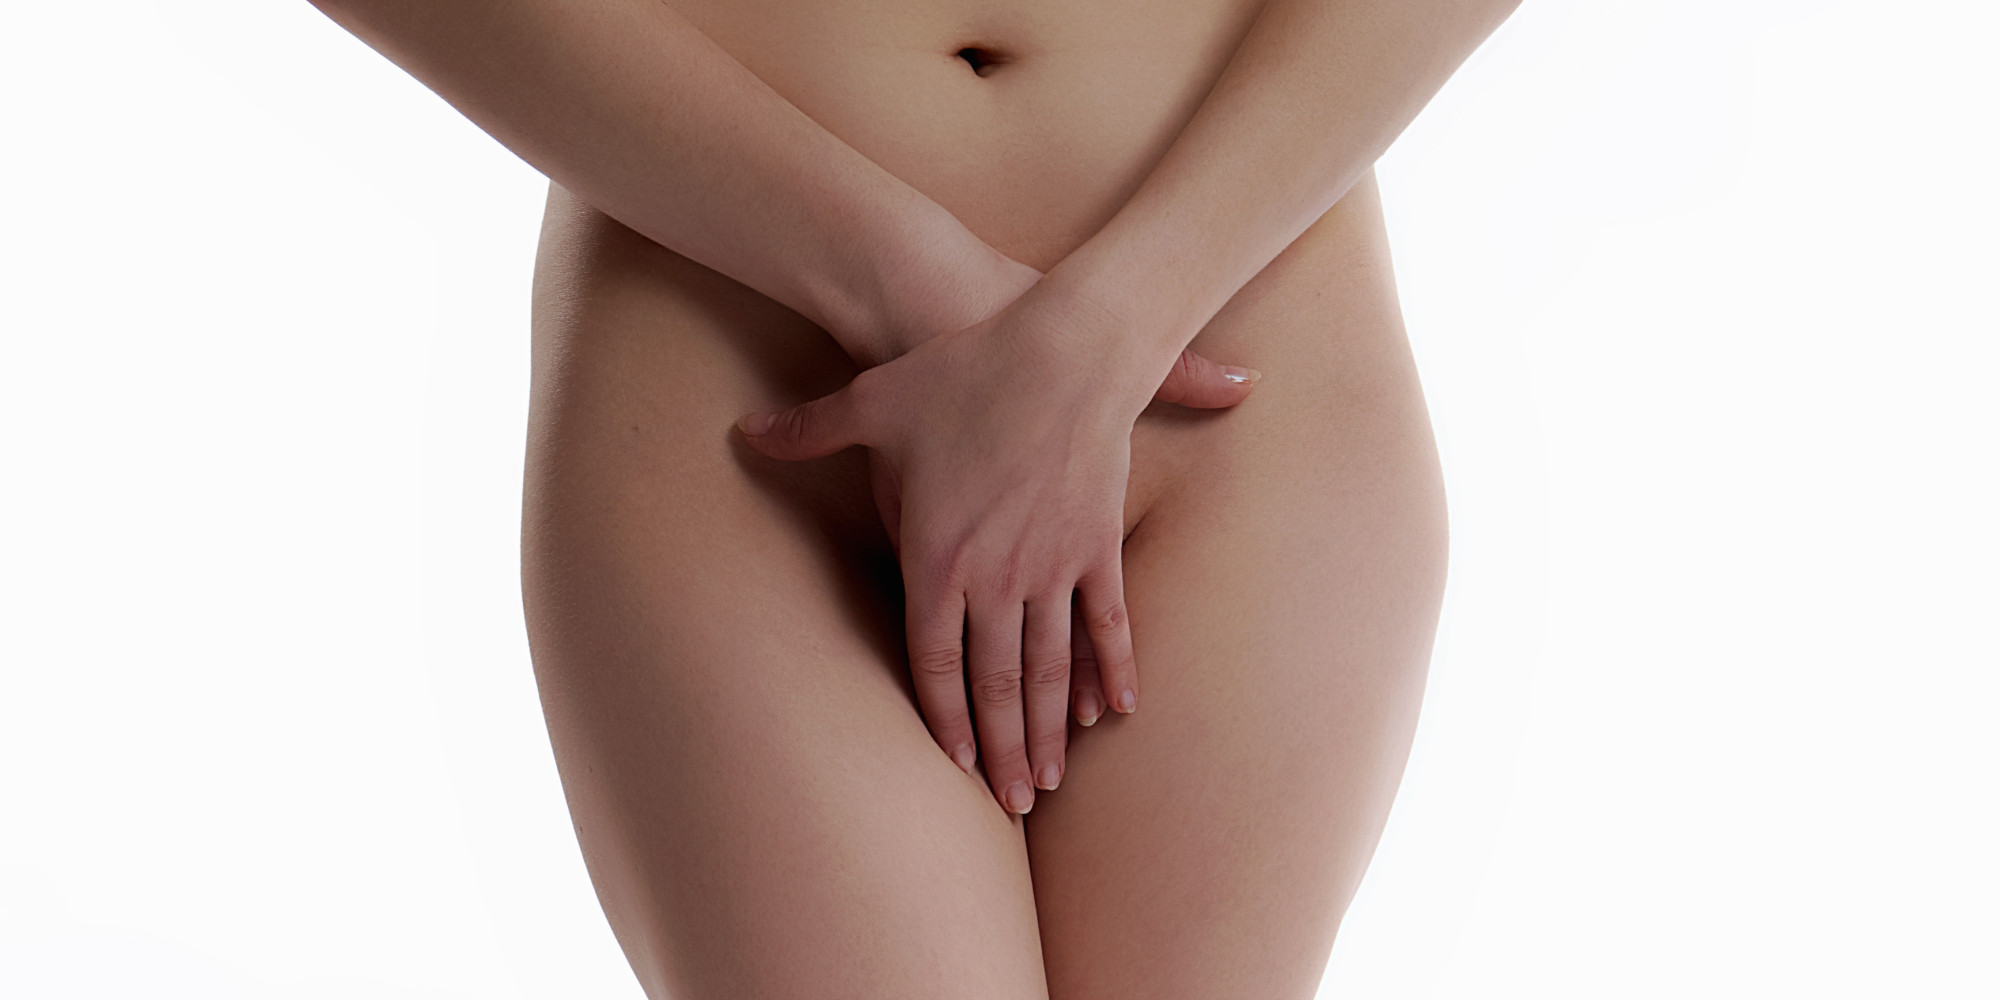 let's clear up some lies you've been told about vaginas | huffpost